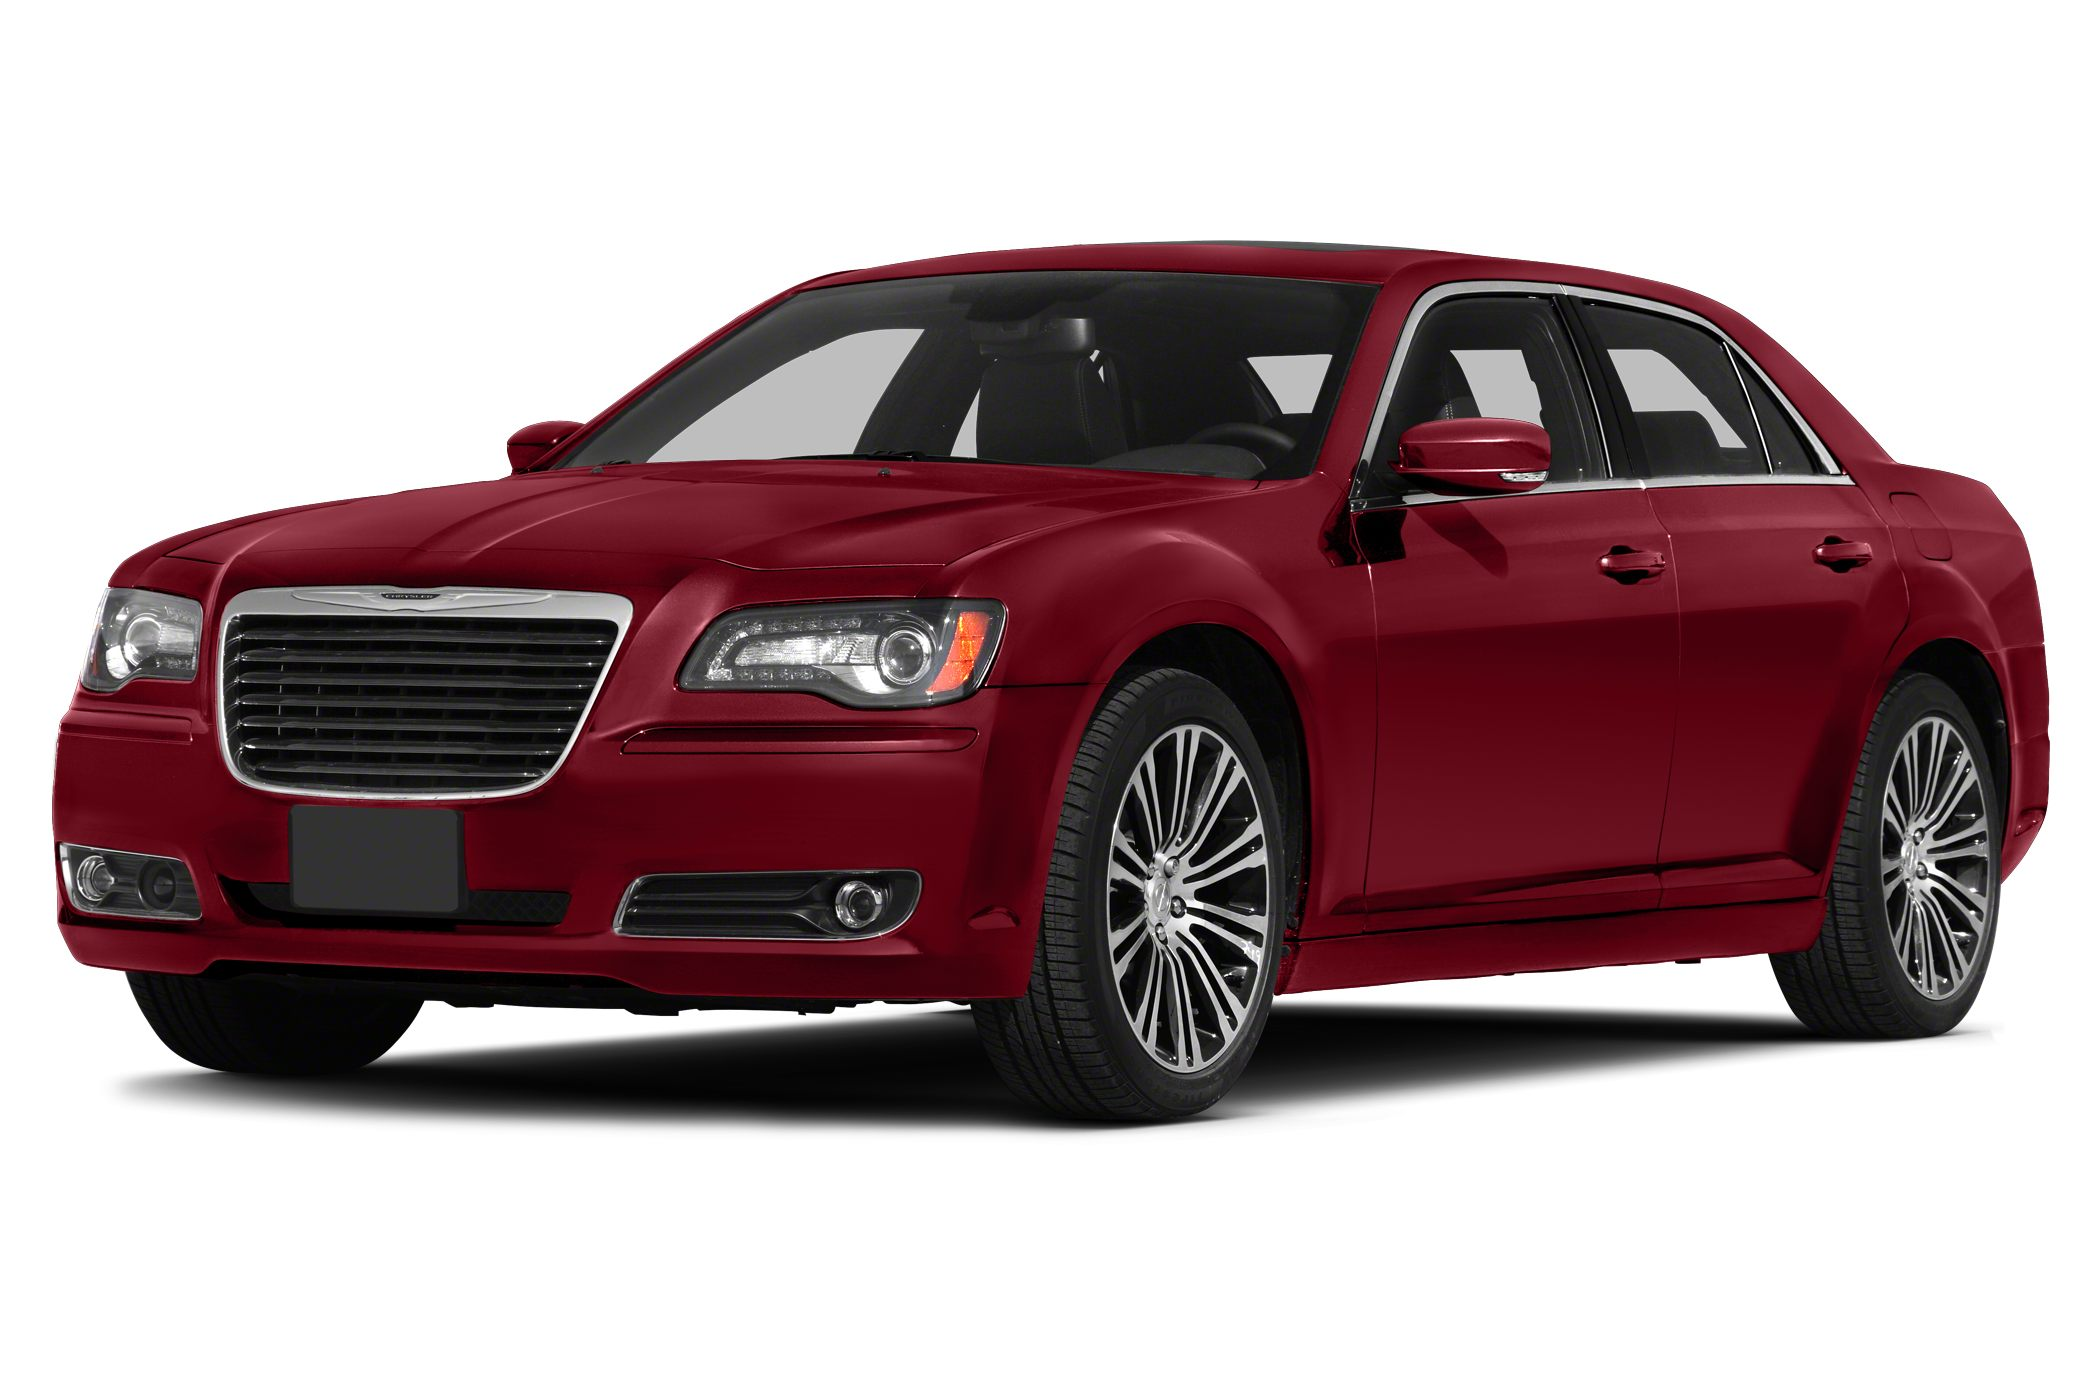 2014 Chrysler 300 S Bluetooth Heated Seats Automatic Leather Seats Low Miles Value Priced Belo